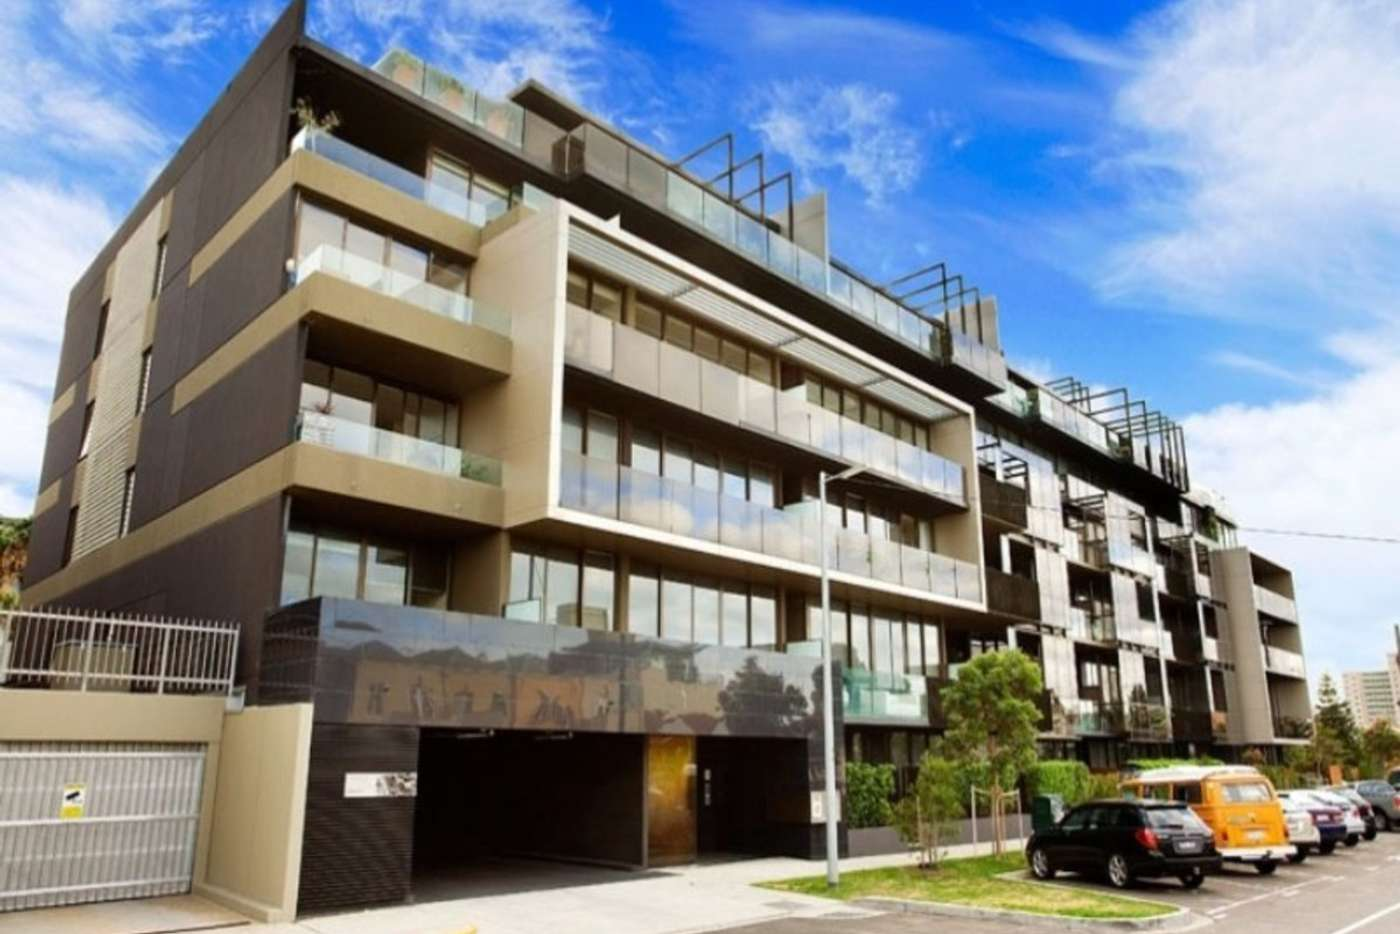 Main view of Homely apartment listing, 108/2 Rouse Street, Port Melbourne VIC 3207